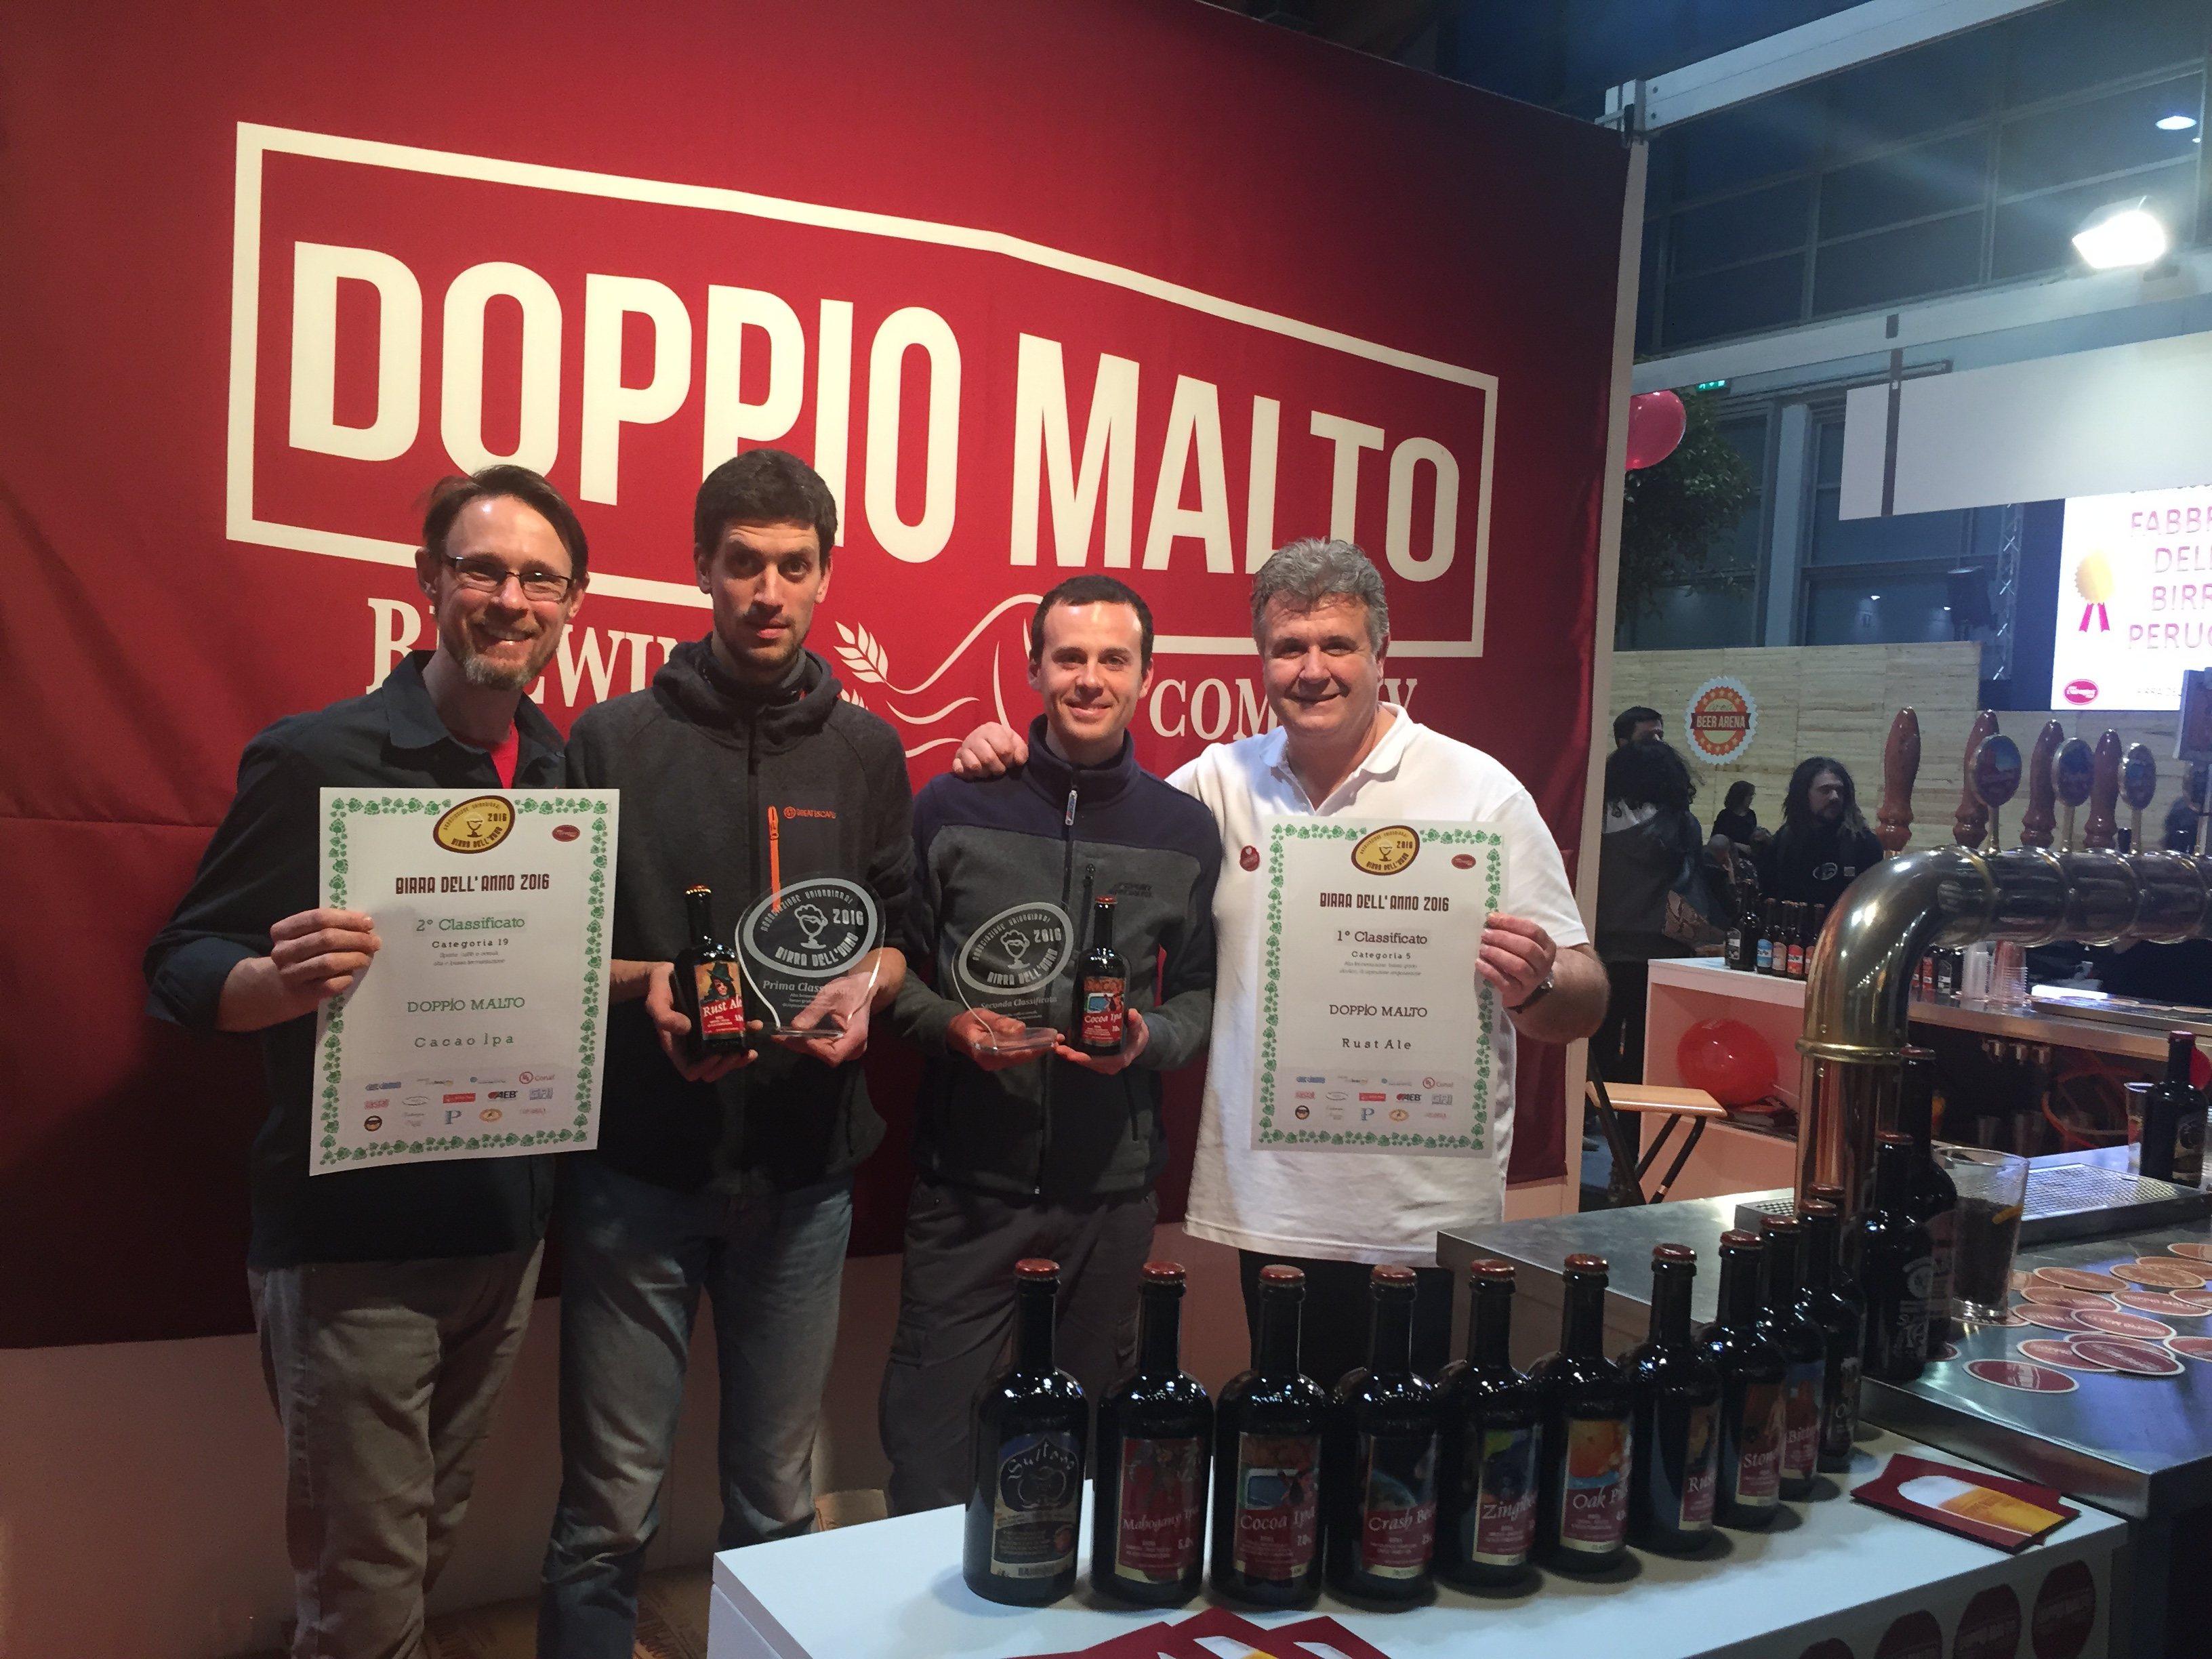 Doppio Malto: dopo le medaglie 5 all'International Beer Challenge, due riconoscimenti al Beer attraction!